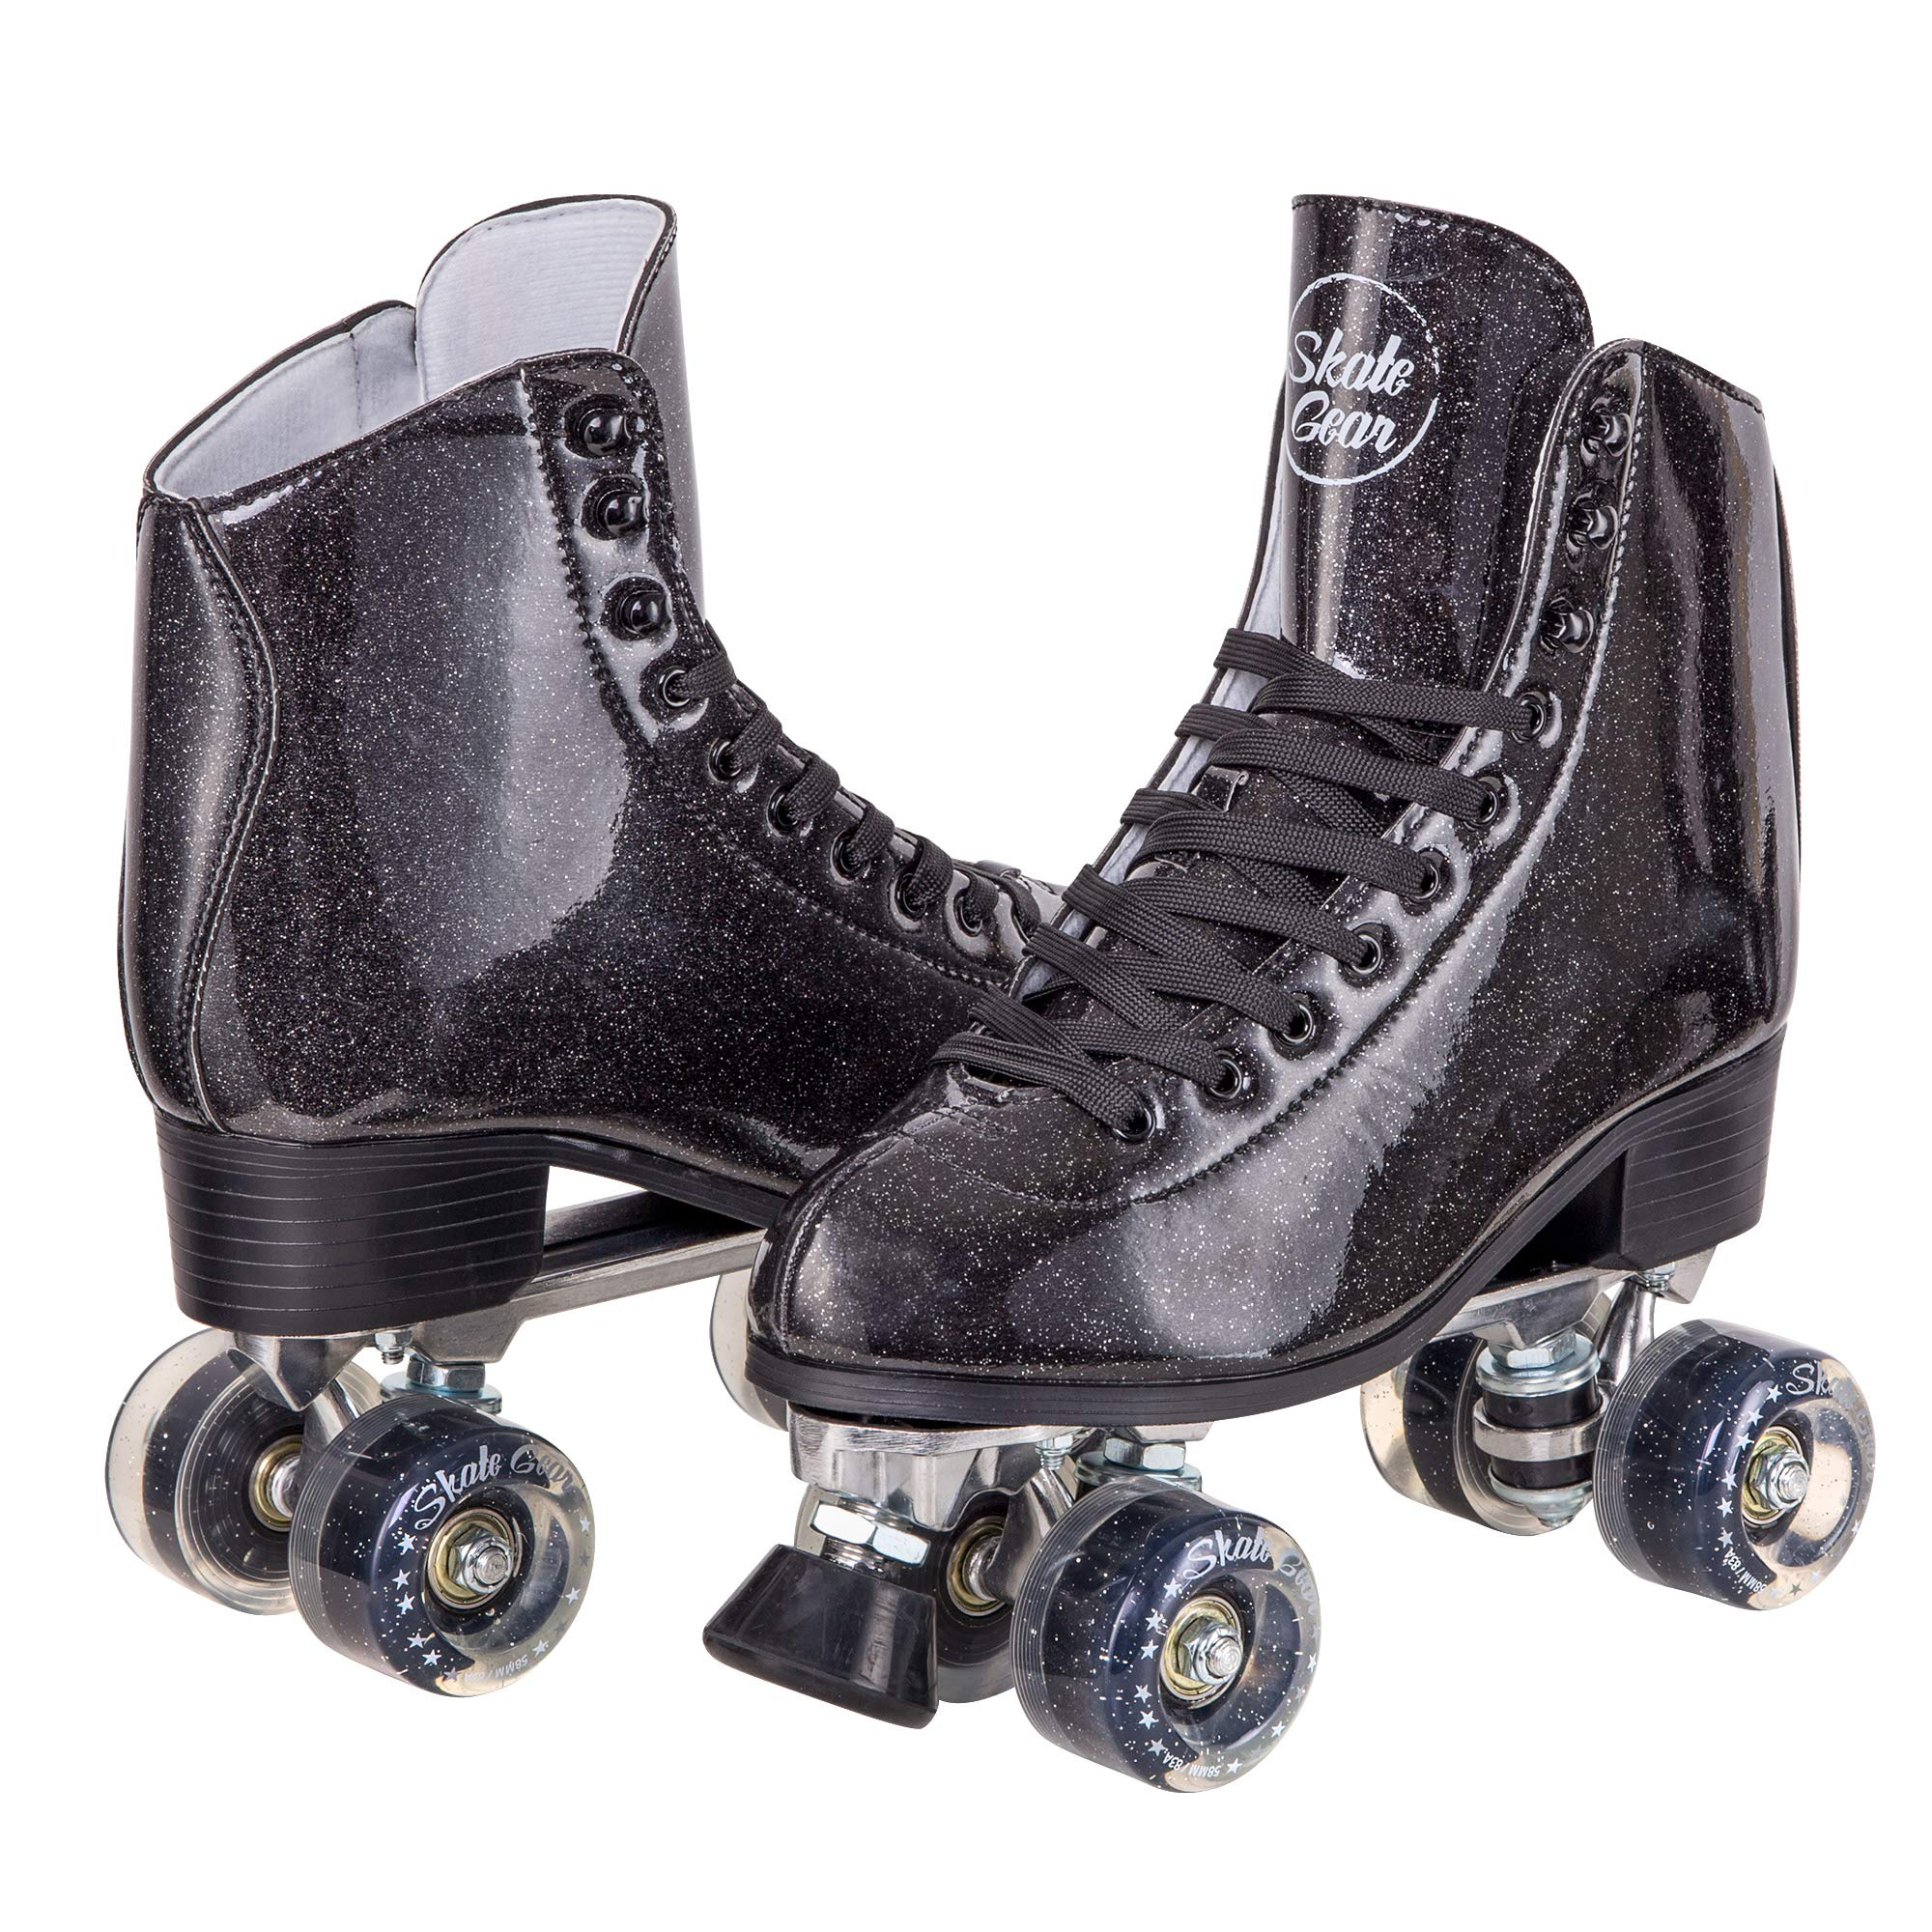 Cal 7 Sparkly Roller Skates for Indoor & Outdoor Skating, Faux Leather Quad Skate with Ankle Support & 83A PU Wheels for Kids & Adults (Black, Men's 9/ Women's 10)